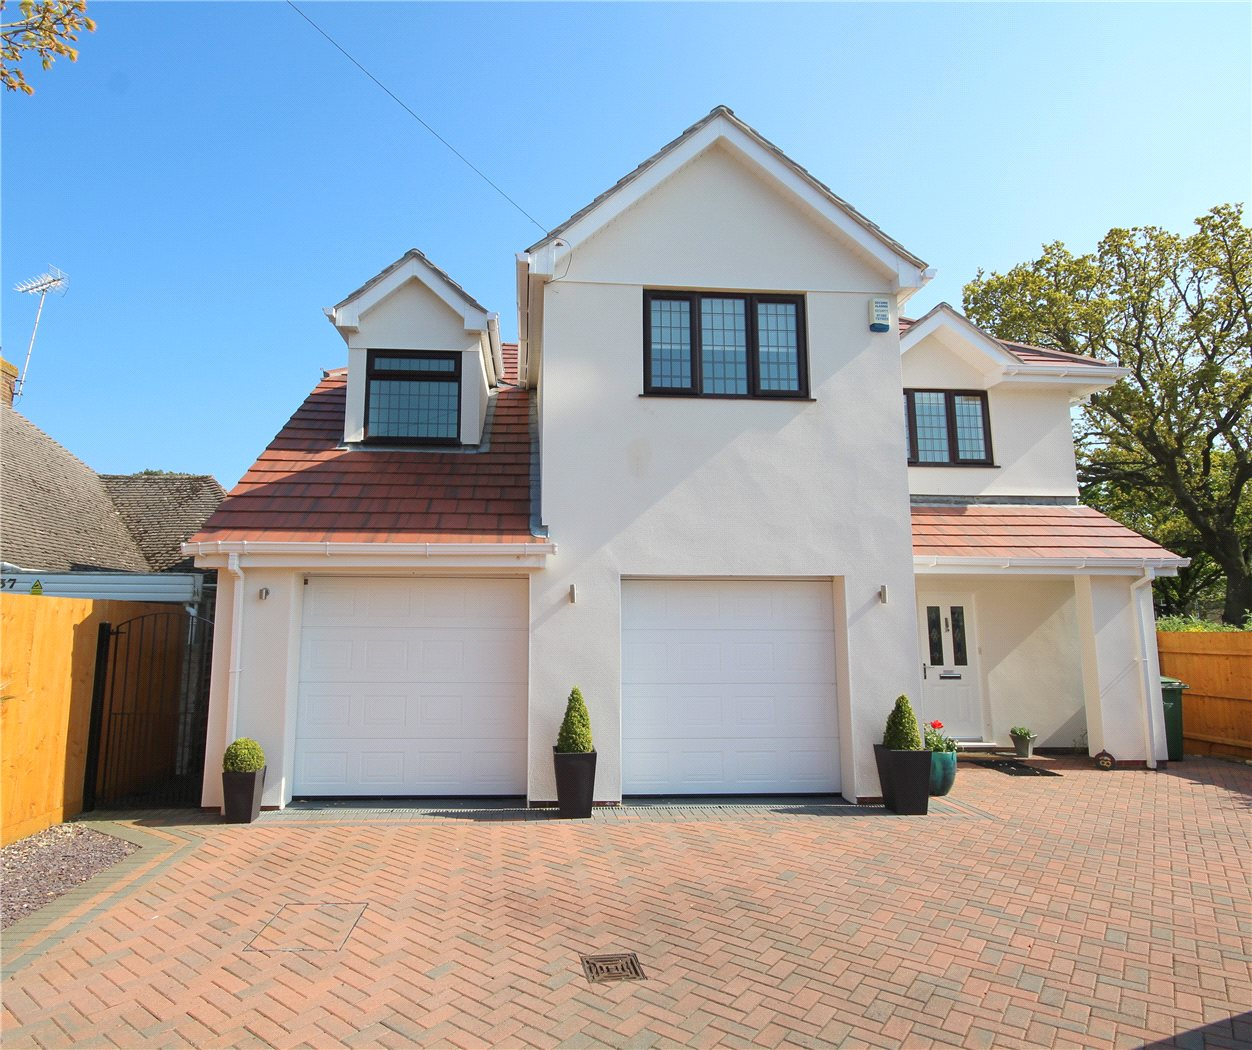 5 Bedrooms Detached House for sale in Pearce Avenue, Lilliput, Poole, Dorset, BH14